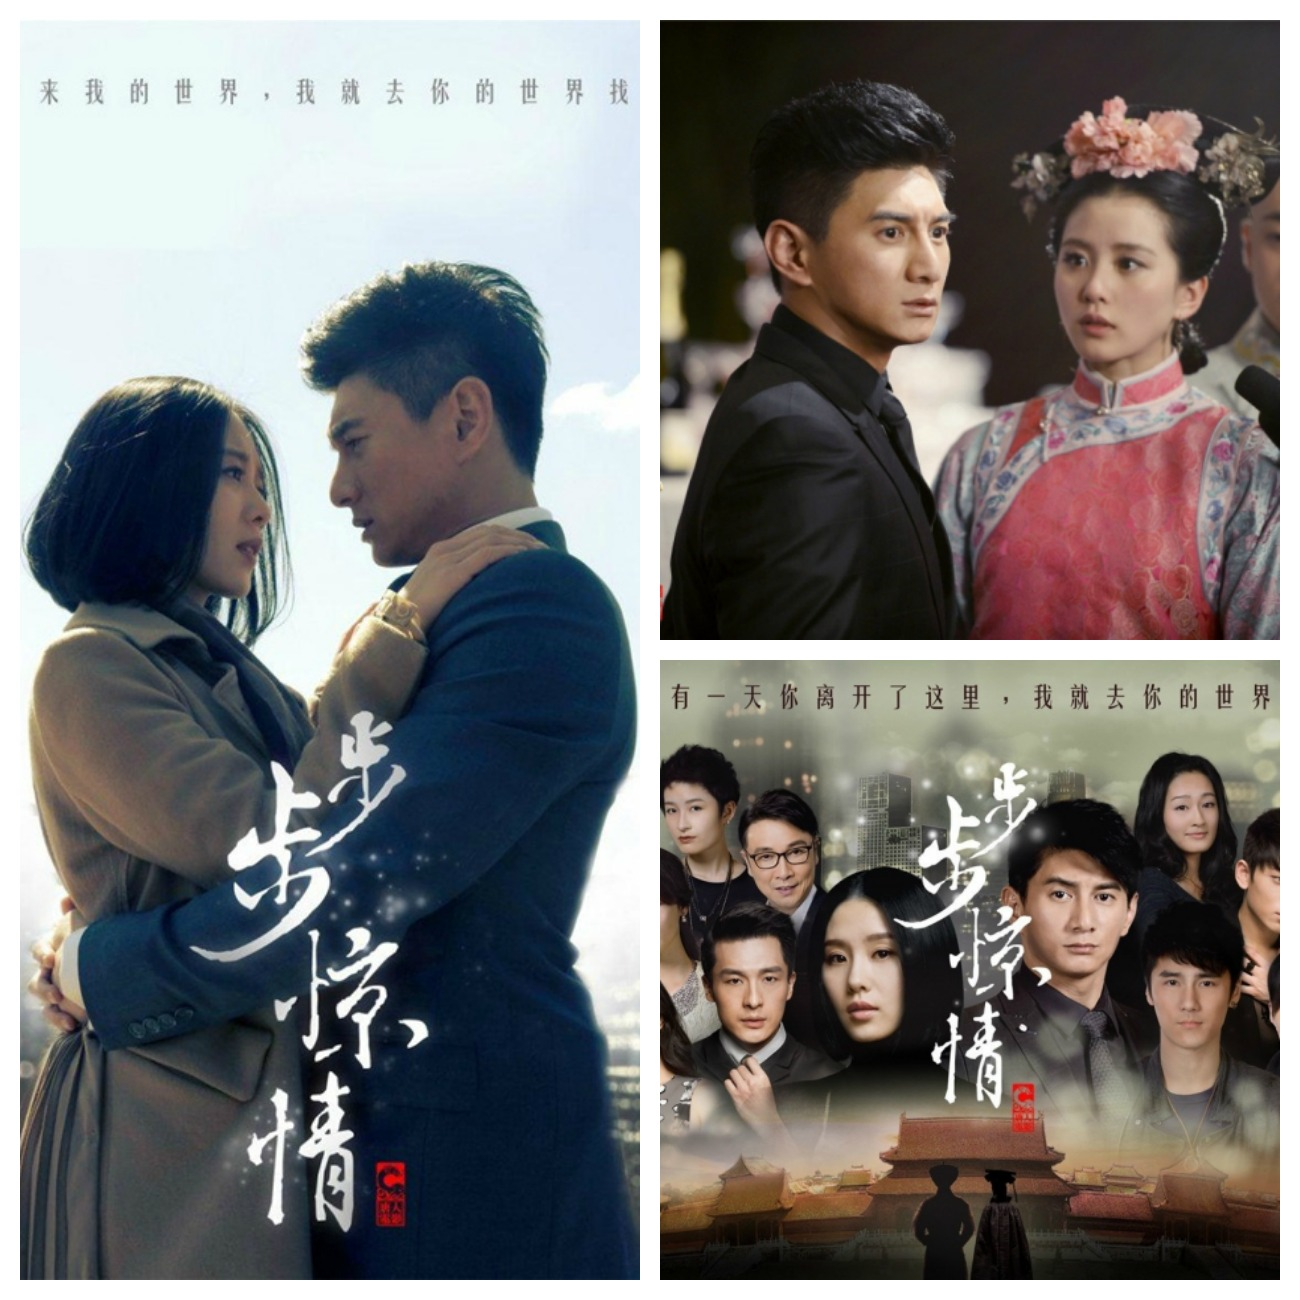 My Drama obsession - Top 5 Best Modern Chinese Dramas - Korea in Beauty